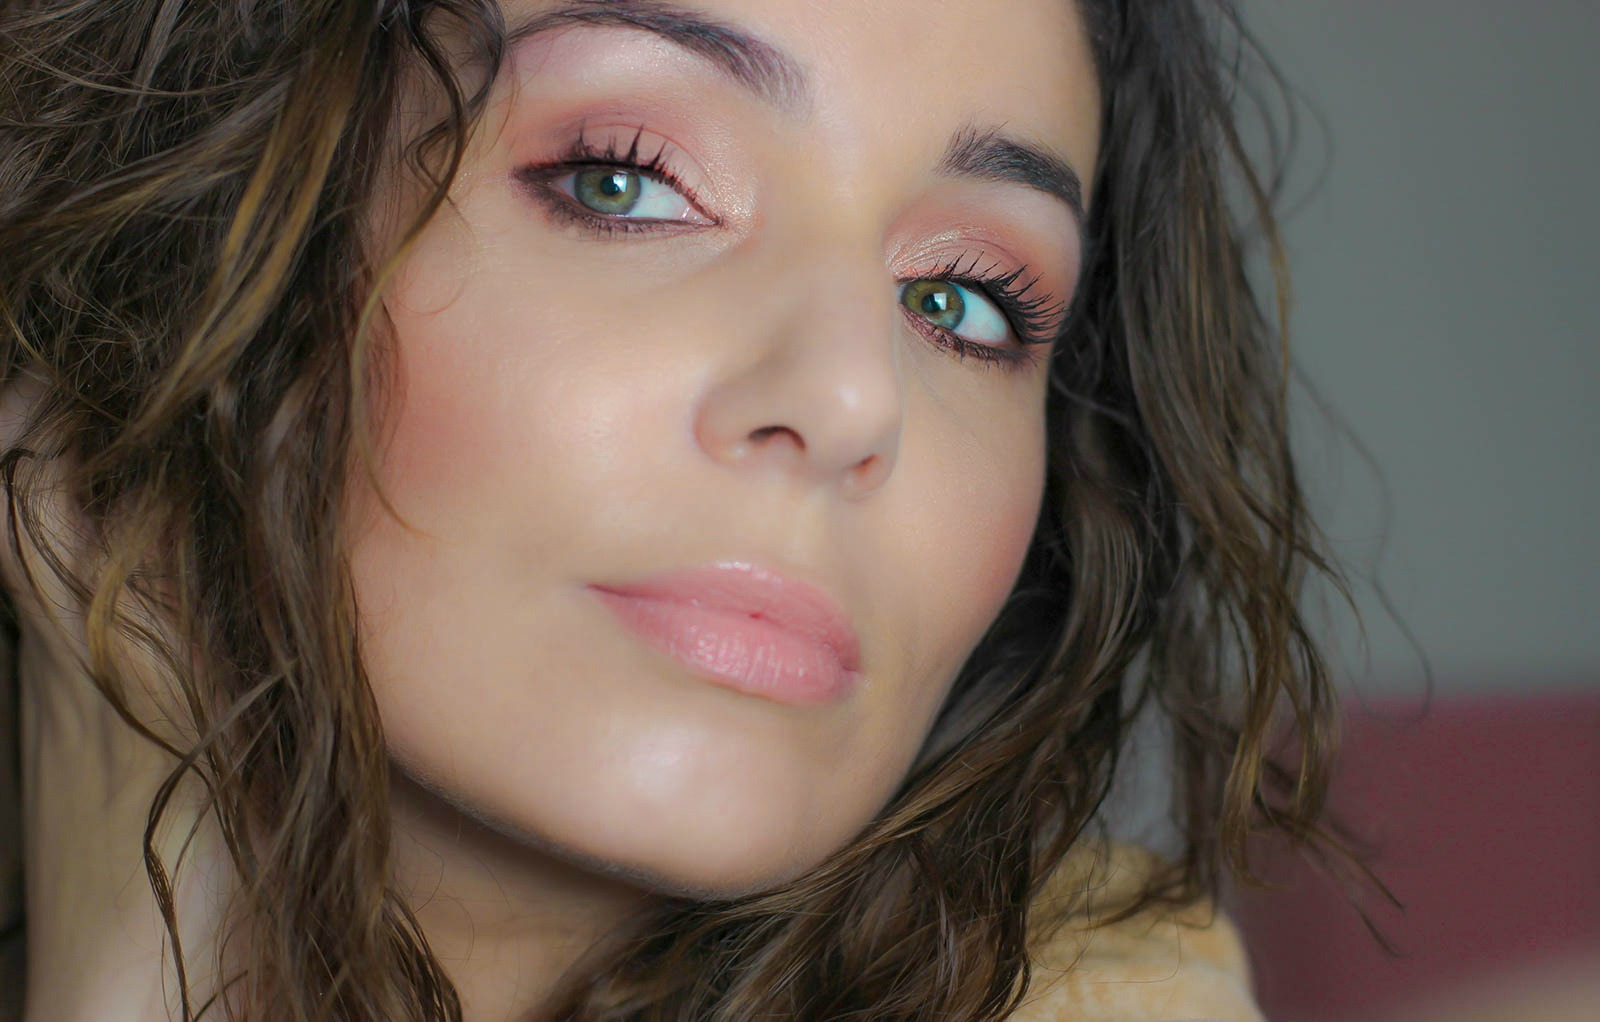 SWEET_PEACH_TOOFACED_makeup-4-2